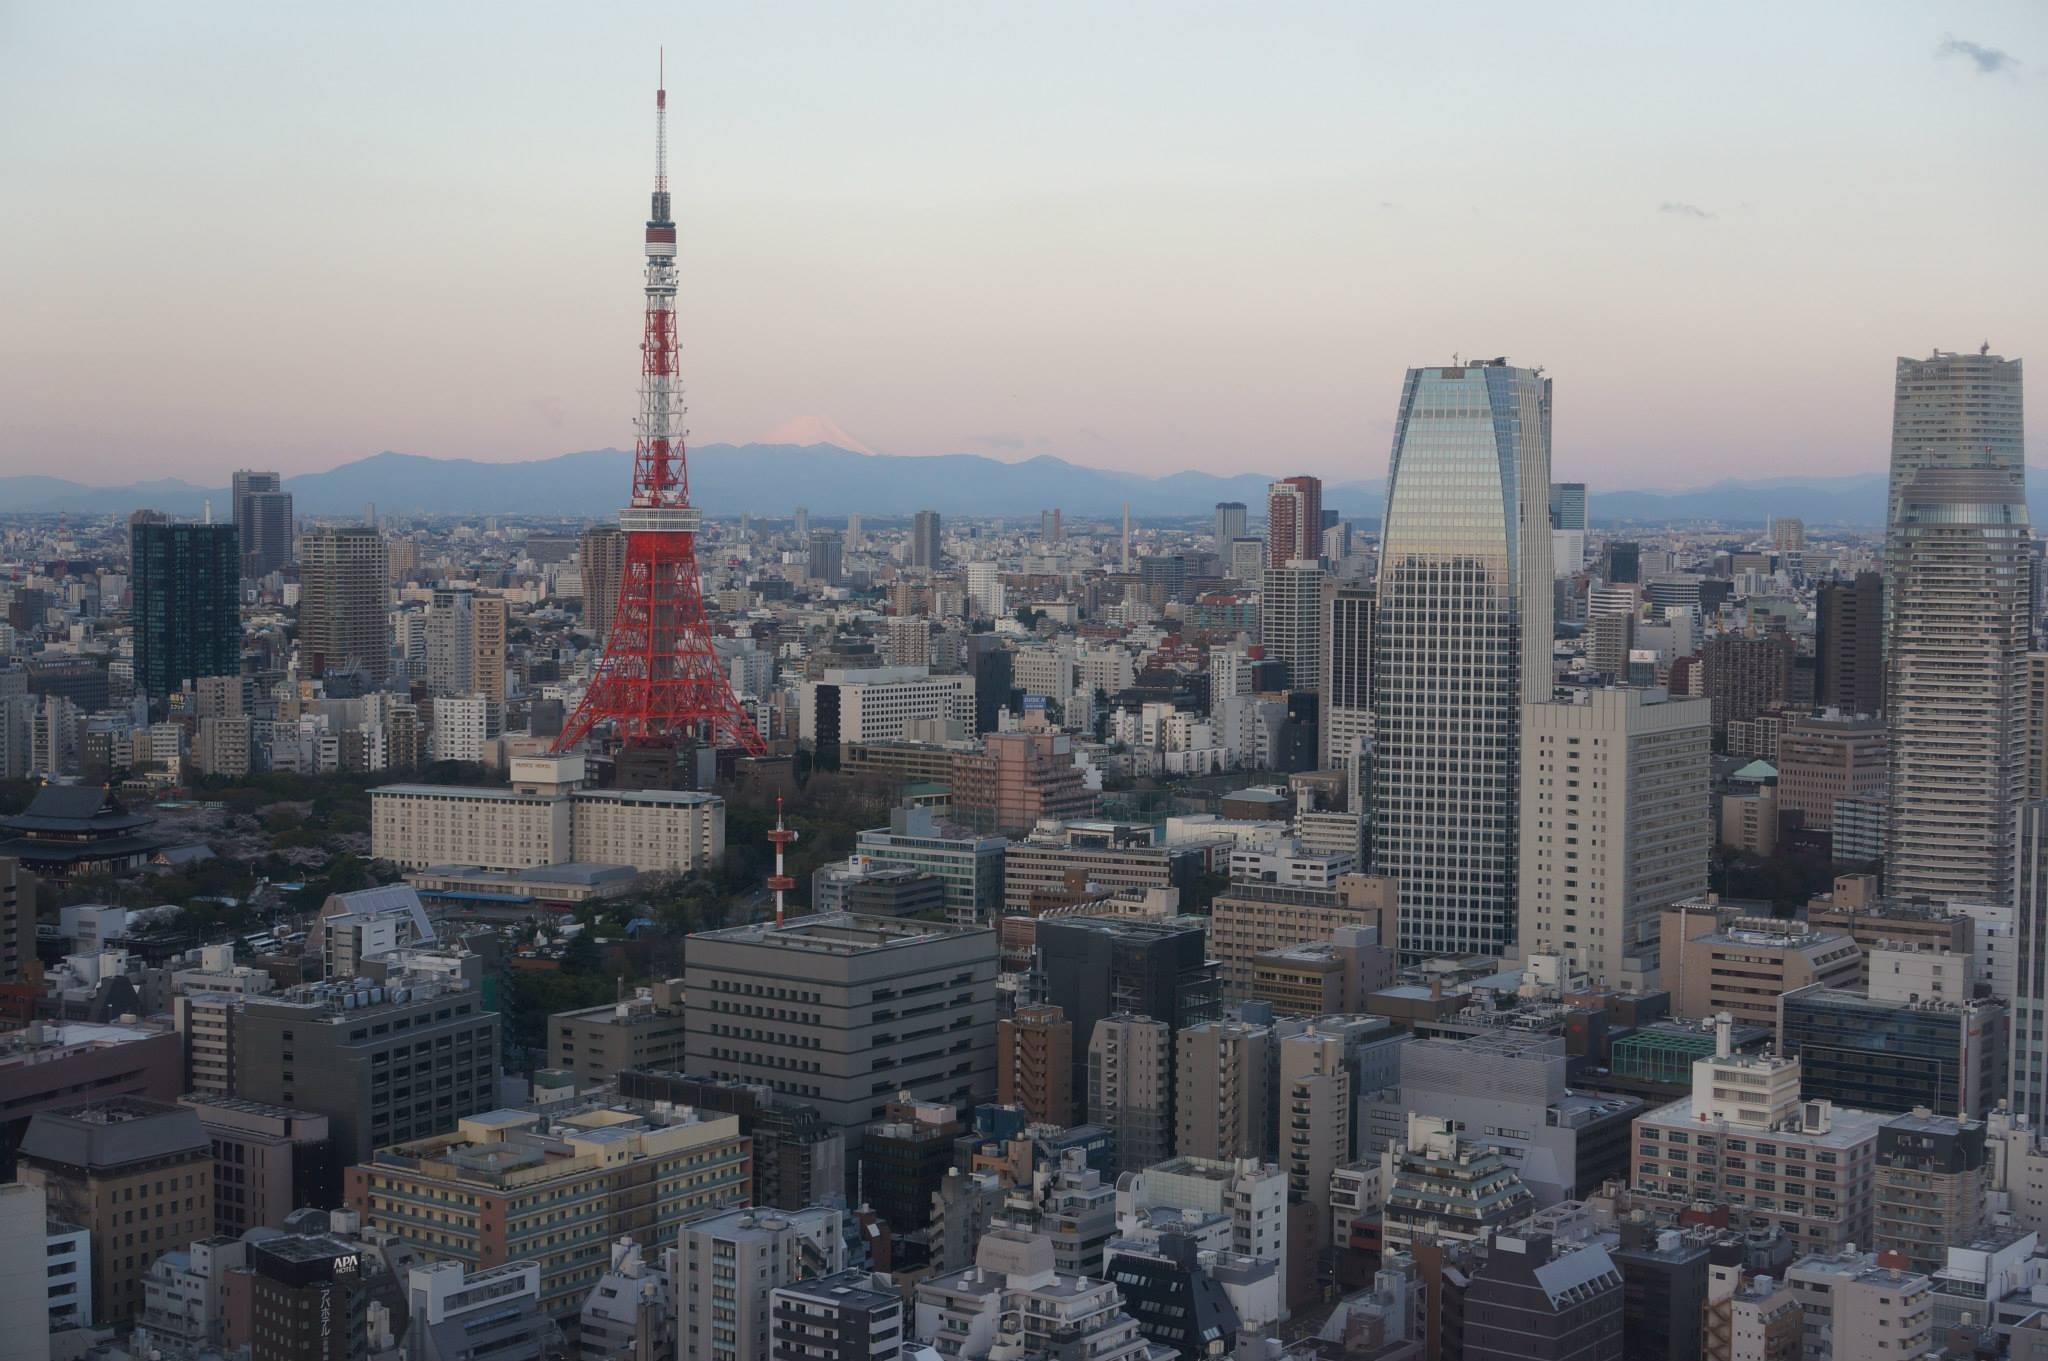 Tip: Stay at the Park Hotel Tokyo and pay the small upgrade fee for a room with a view.